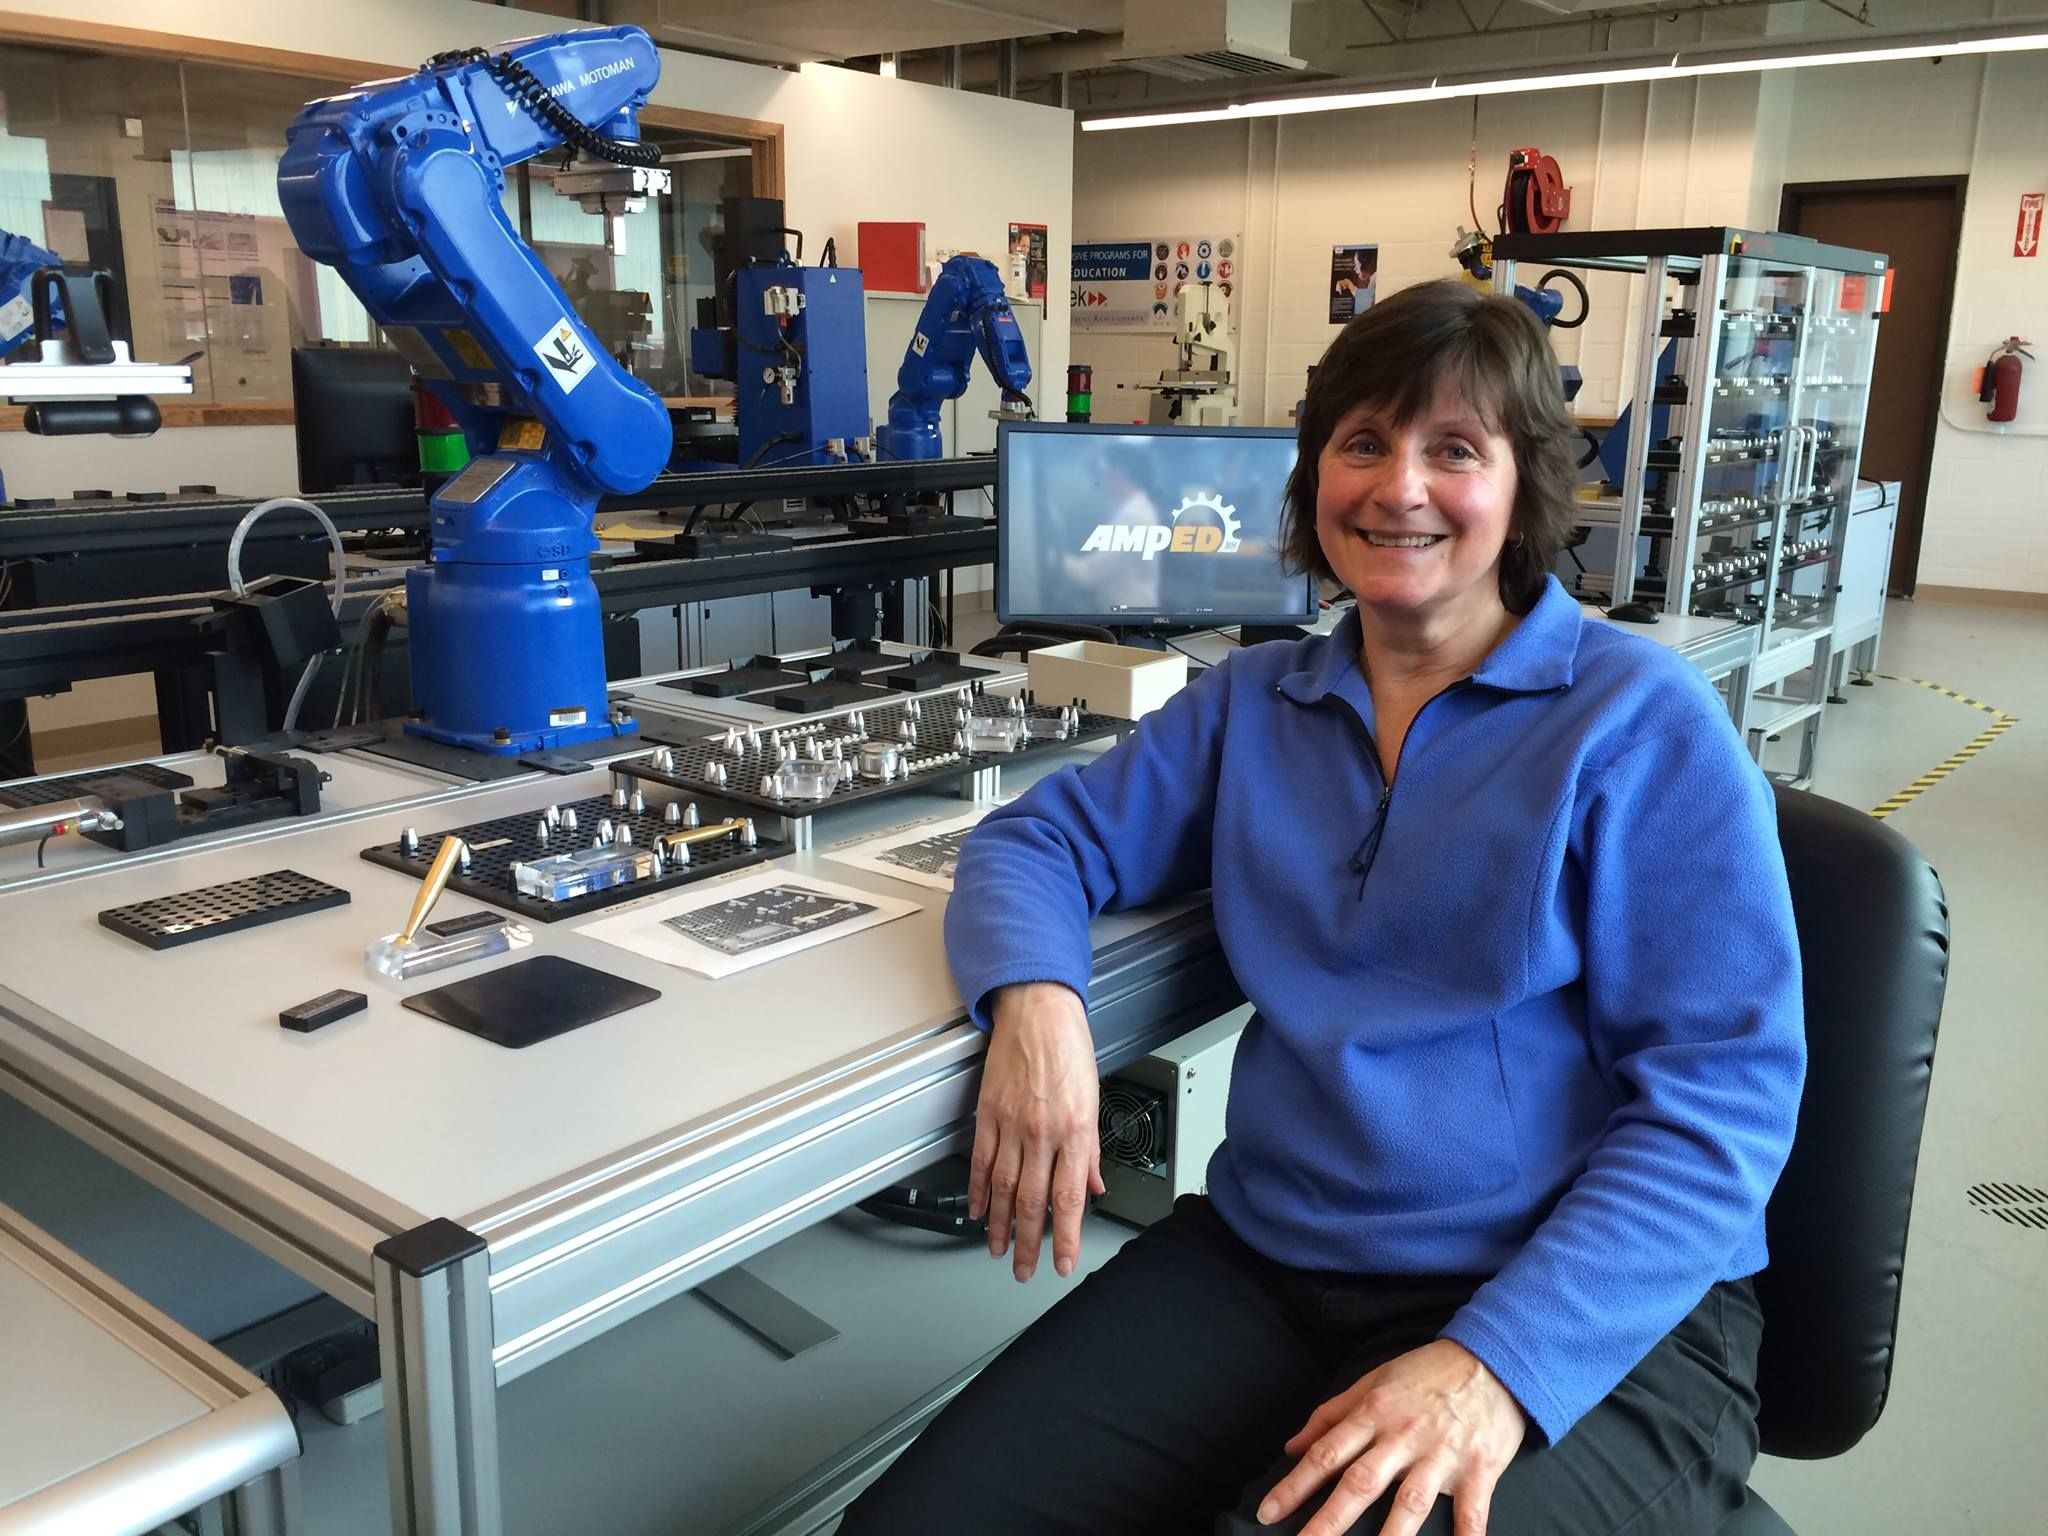 Mcc student karen keating was hired before she even